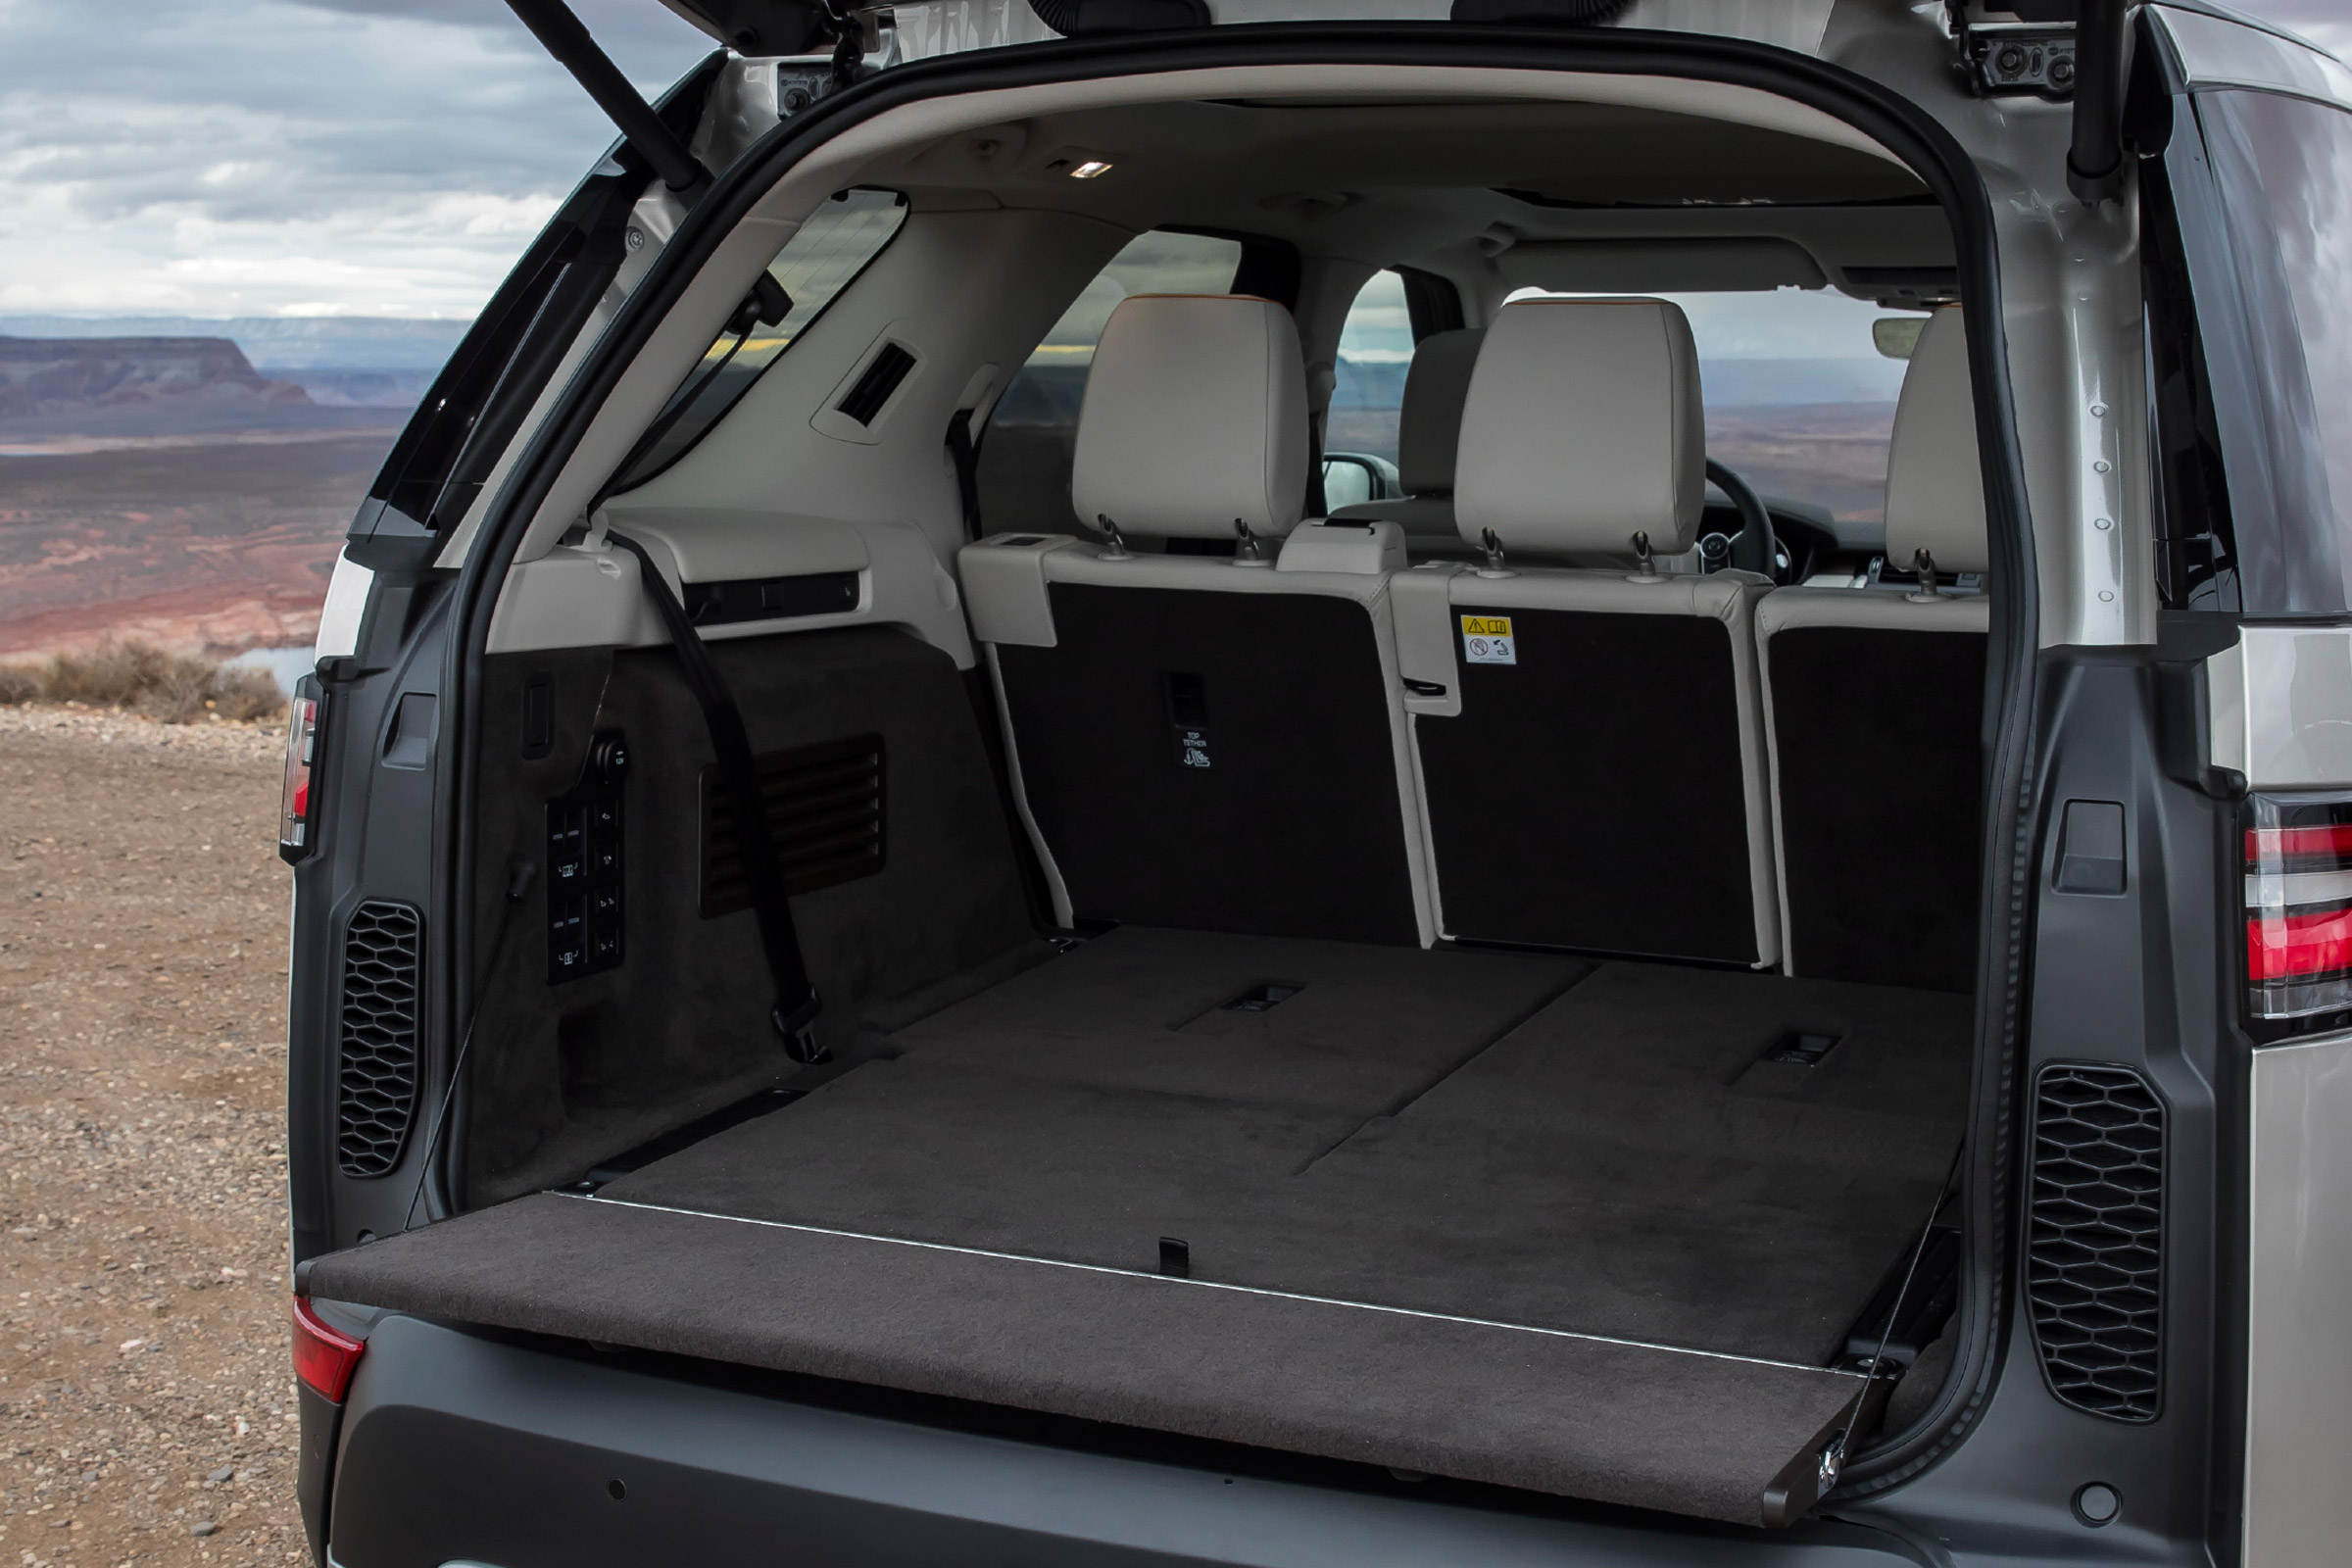 2017 Land Rover Discovery Interior View Cargo Seats Folded (Photo 10 of 17)